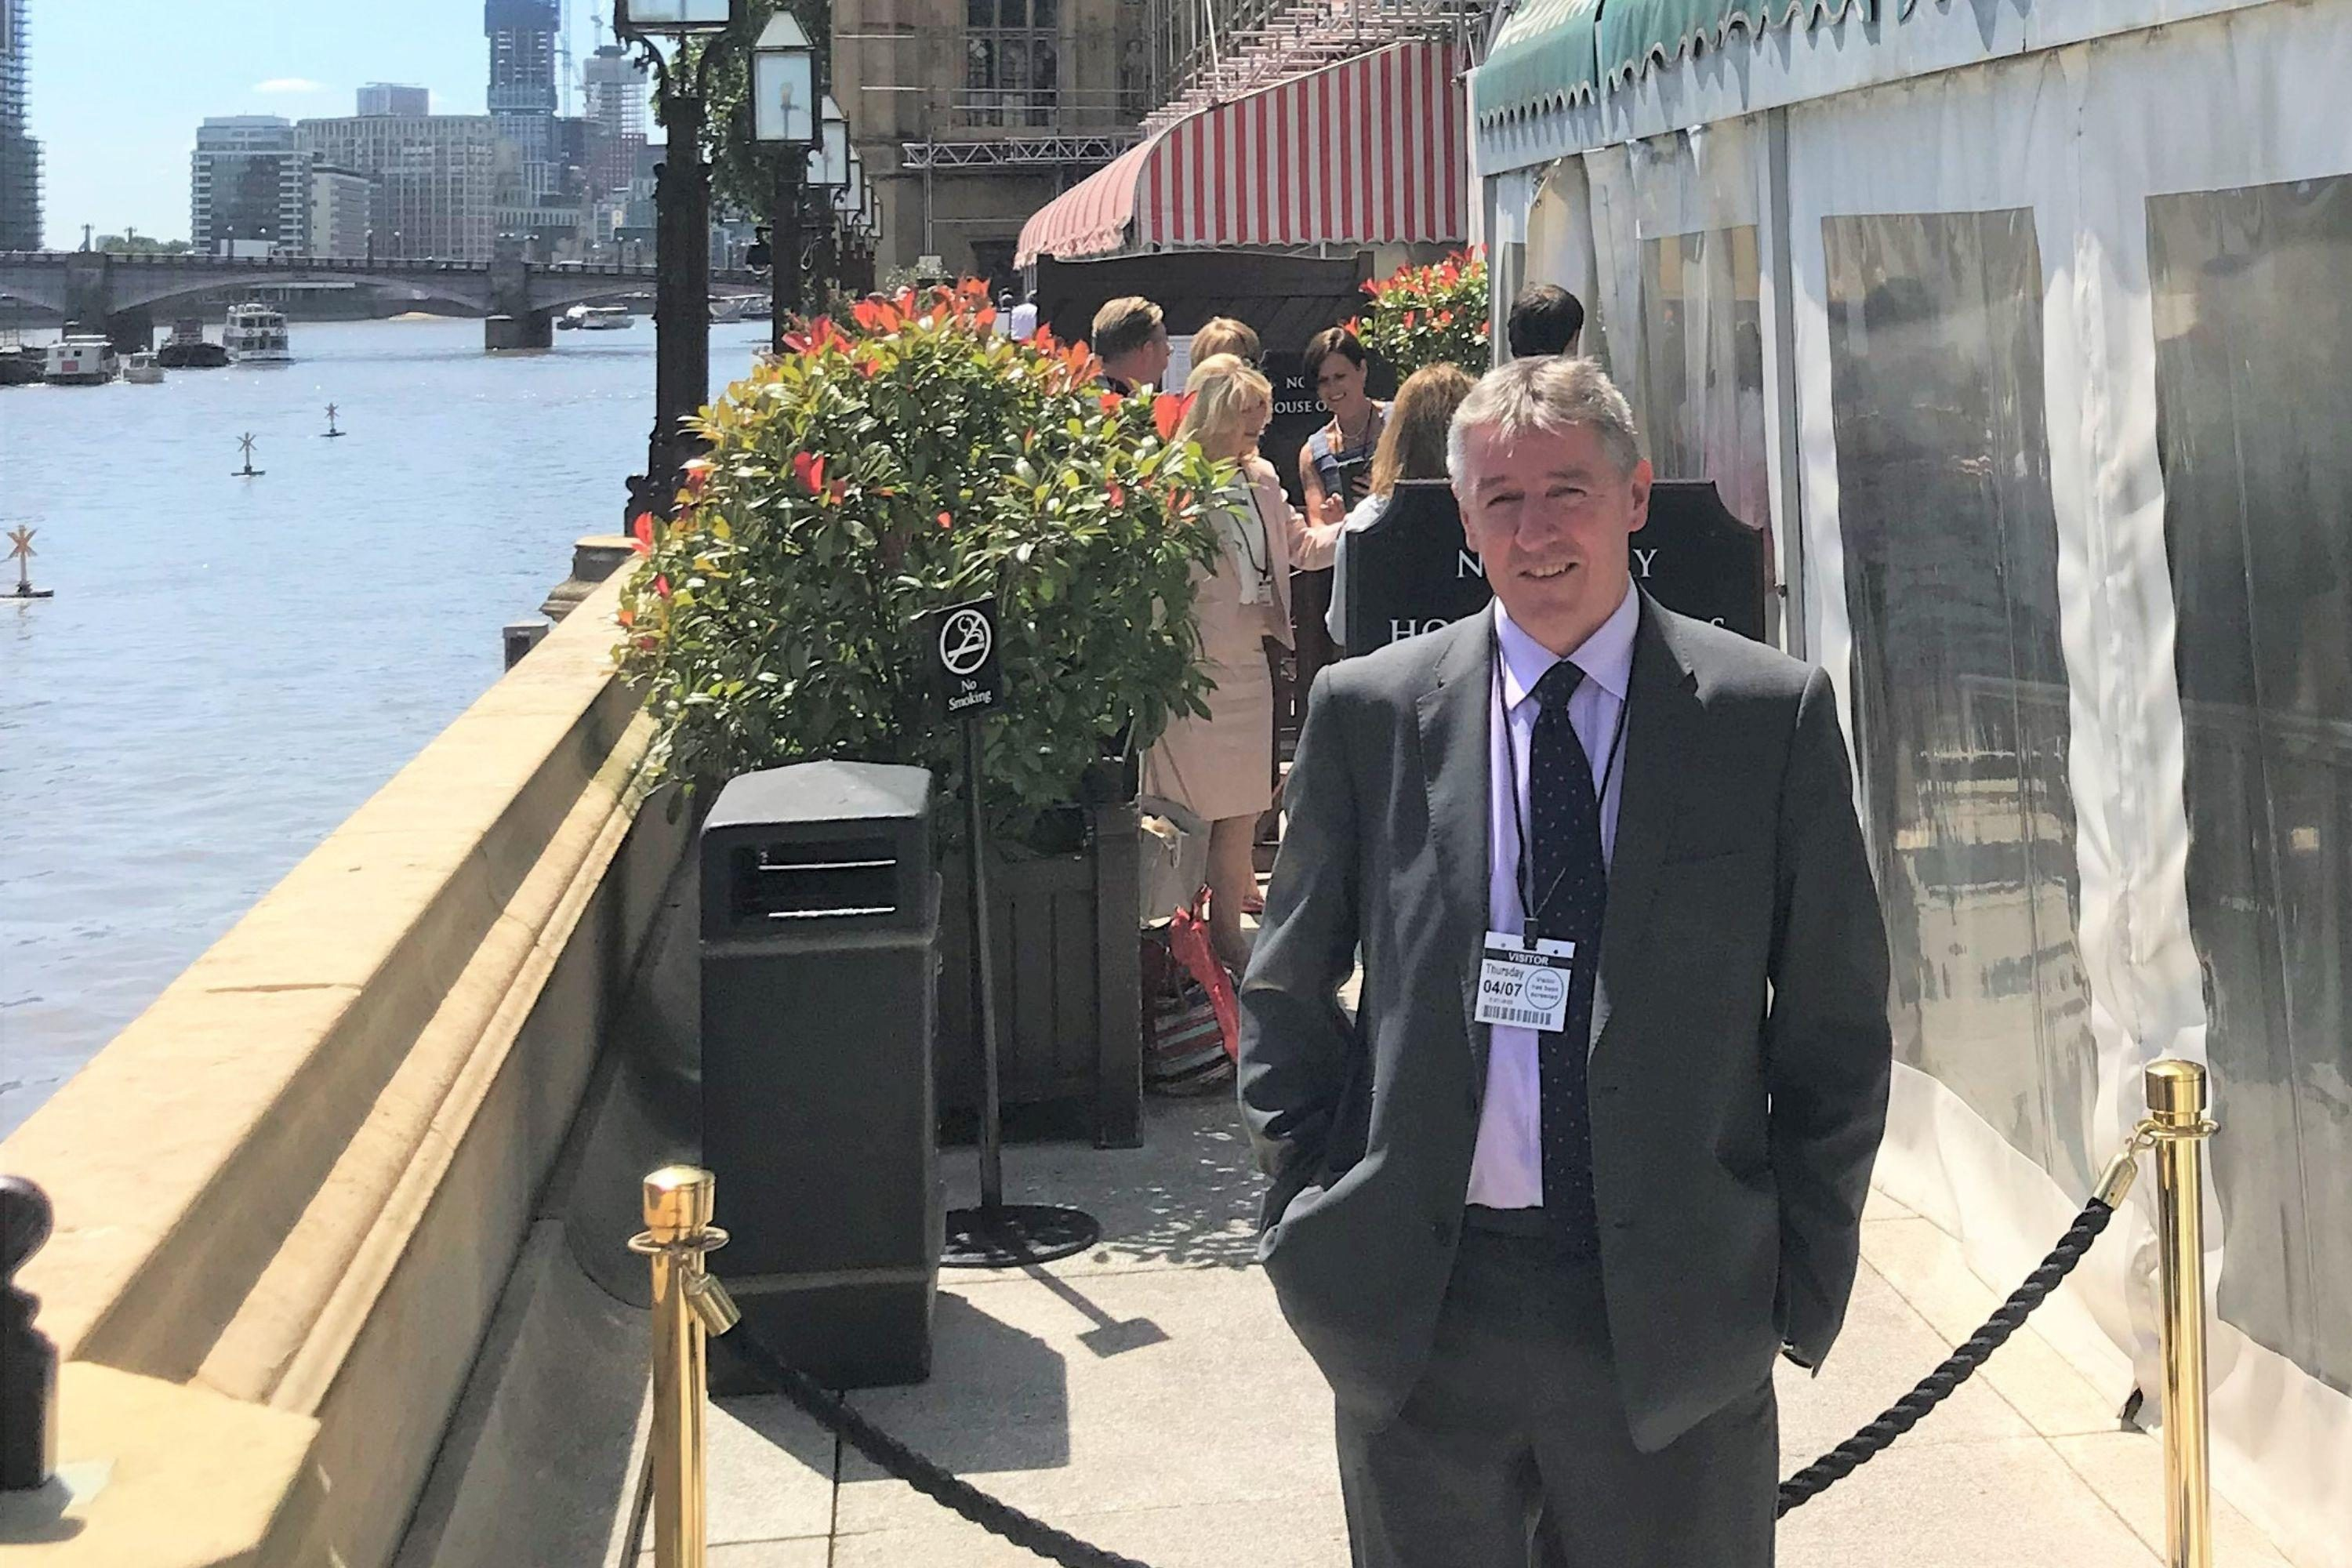 Eric Nicholls at the House of Lords Terrace